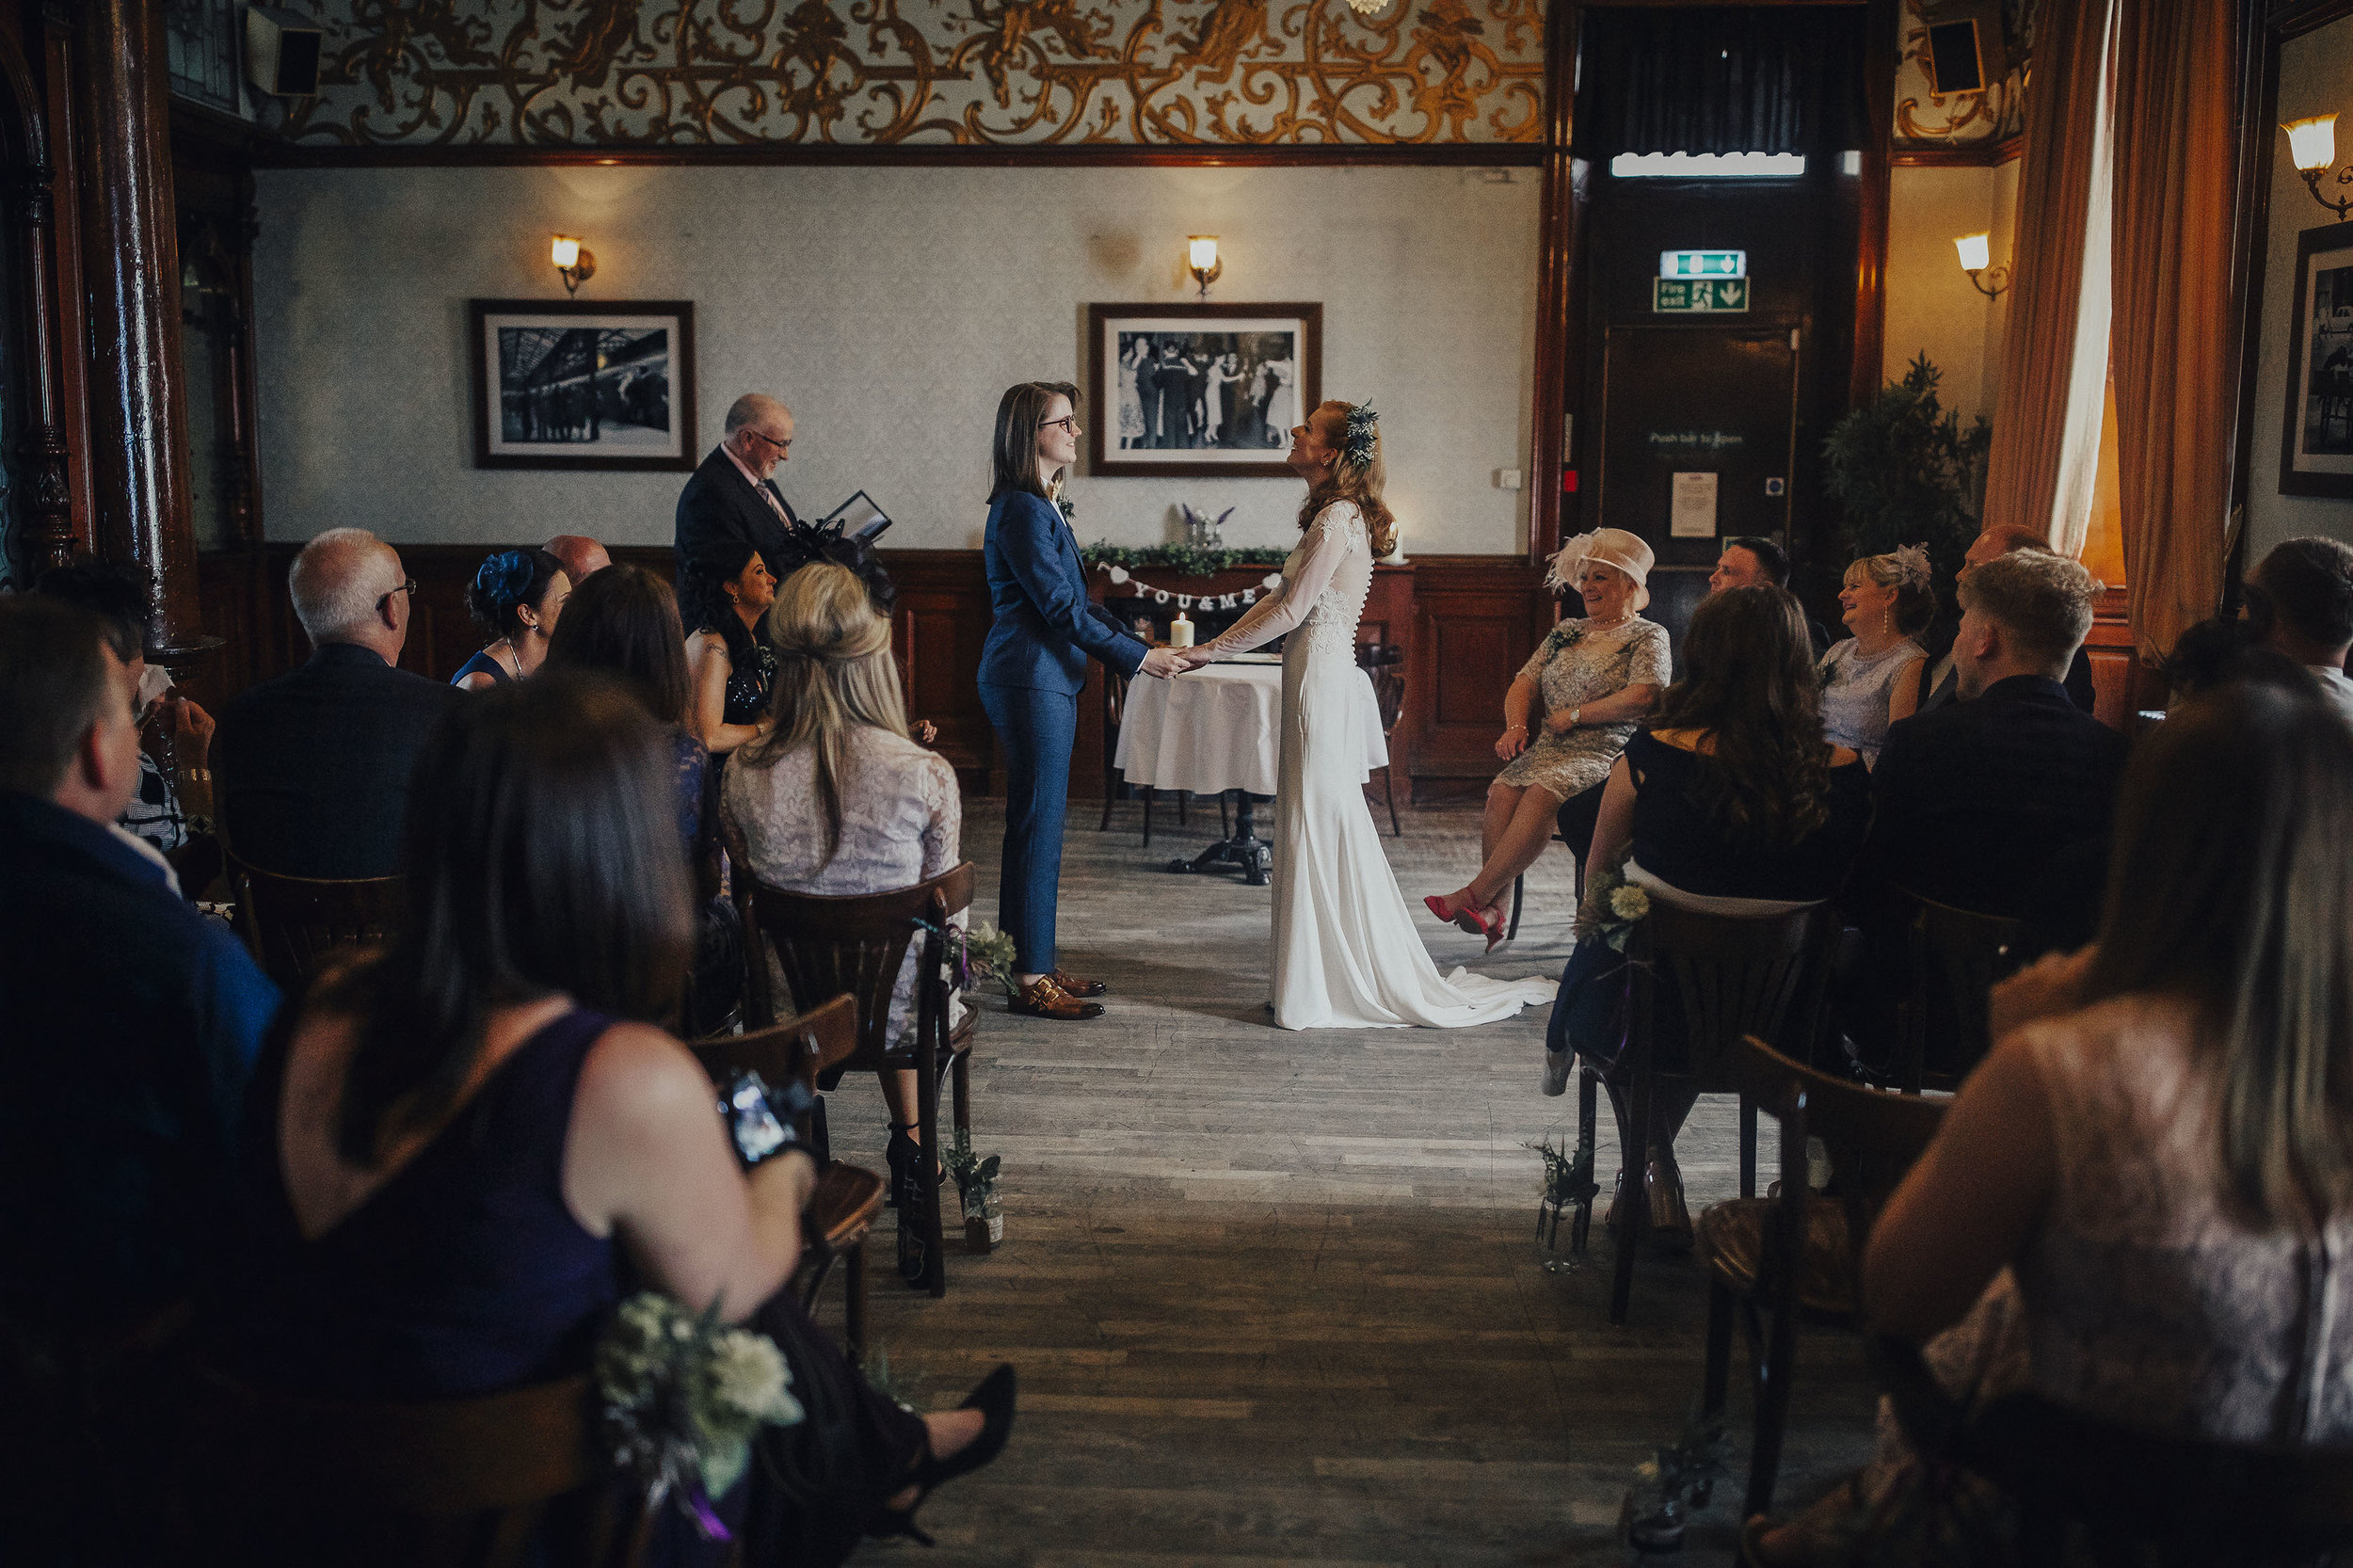 SAME_SEX_WEDDING_PHOTOGRAPHER_SLOANS_GLASGOW_PJ_PHILLIPS_PHOTOGRAPHY_33.jpg